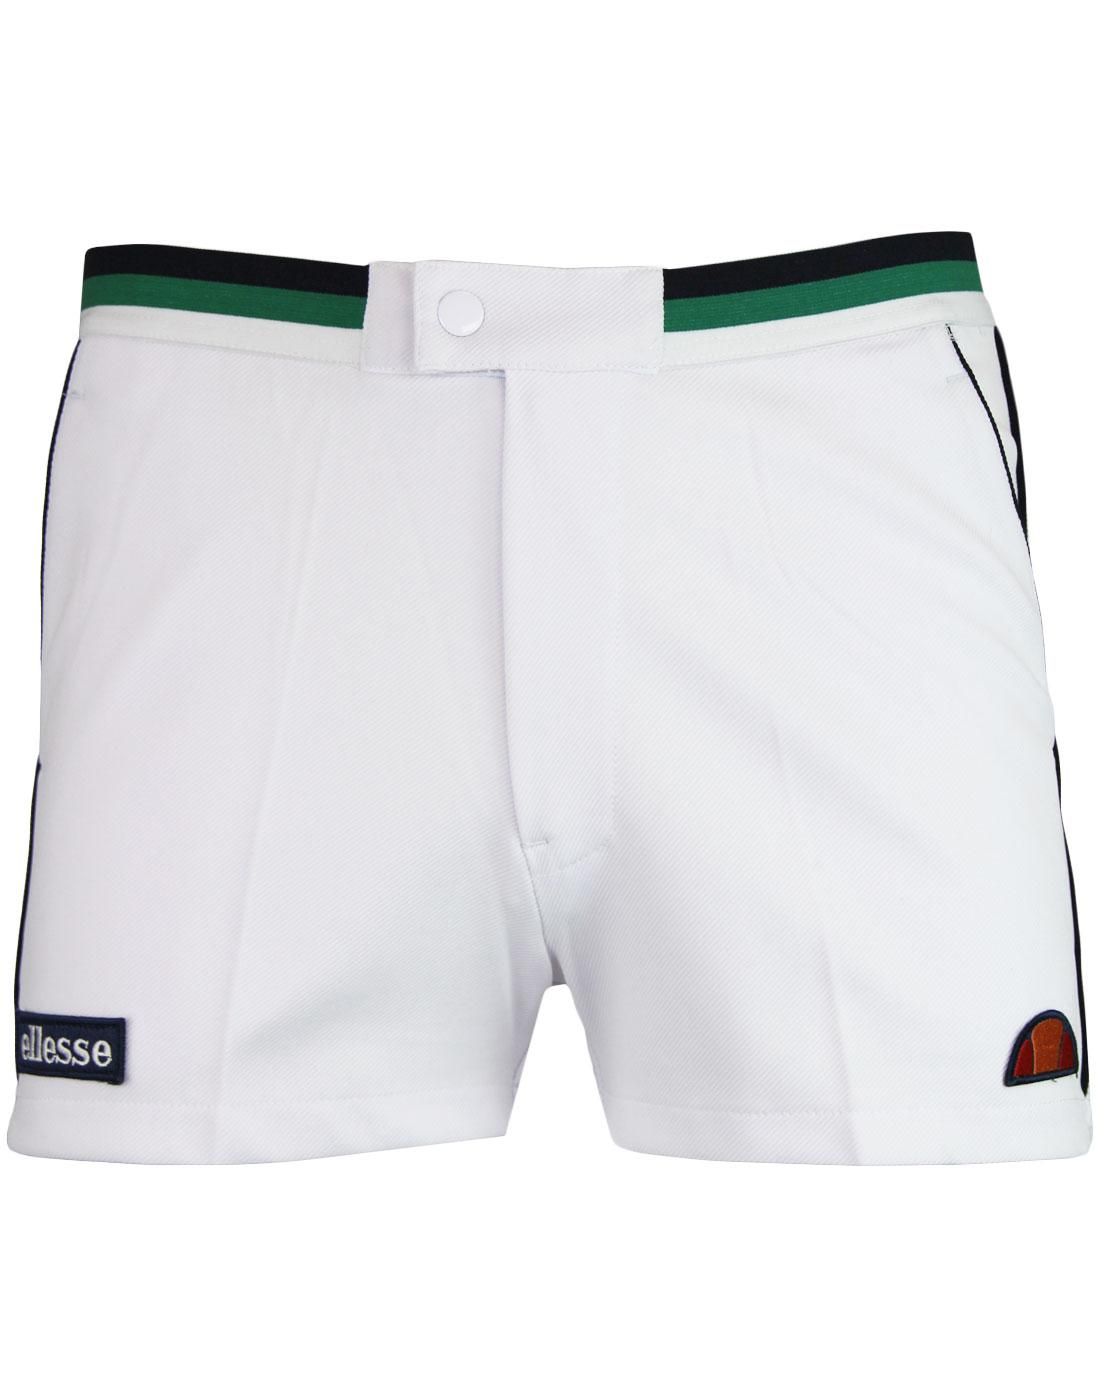 Knapp ELLESSE Men's Retro 70s Tennis Shorts (OW)